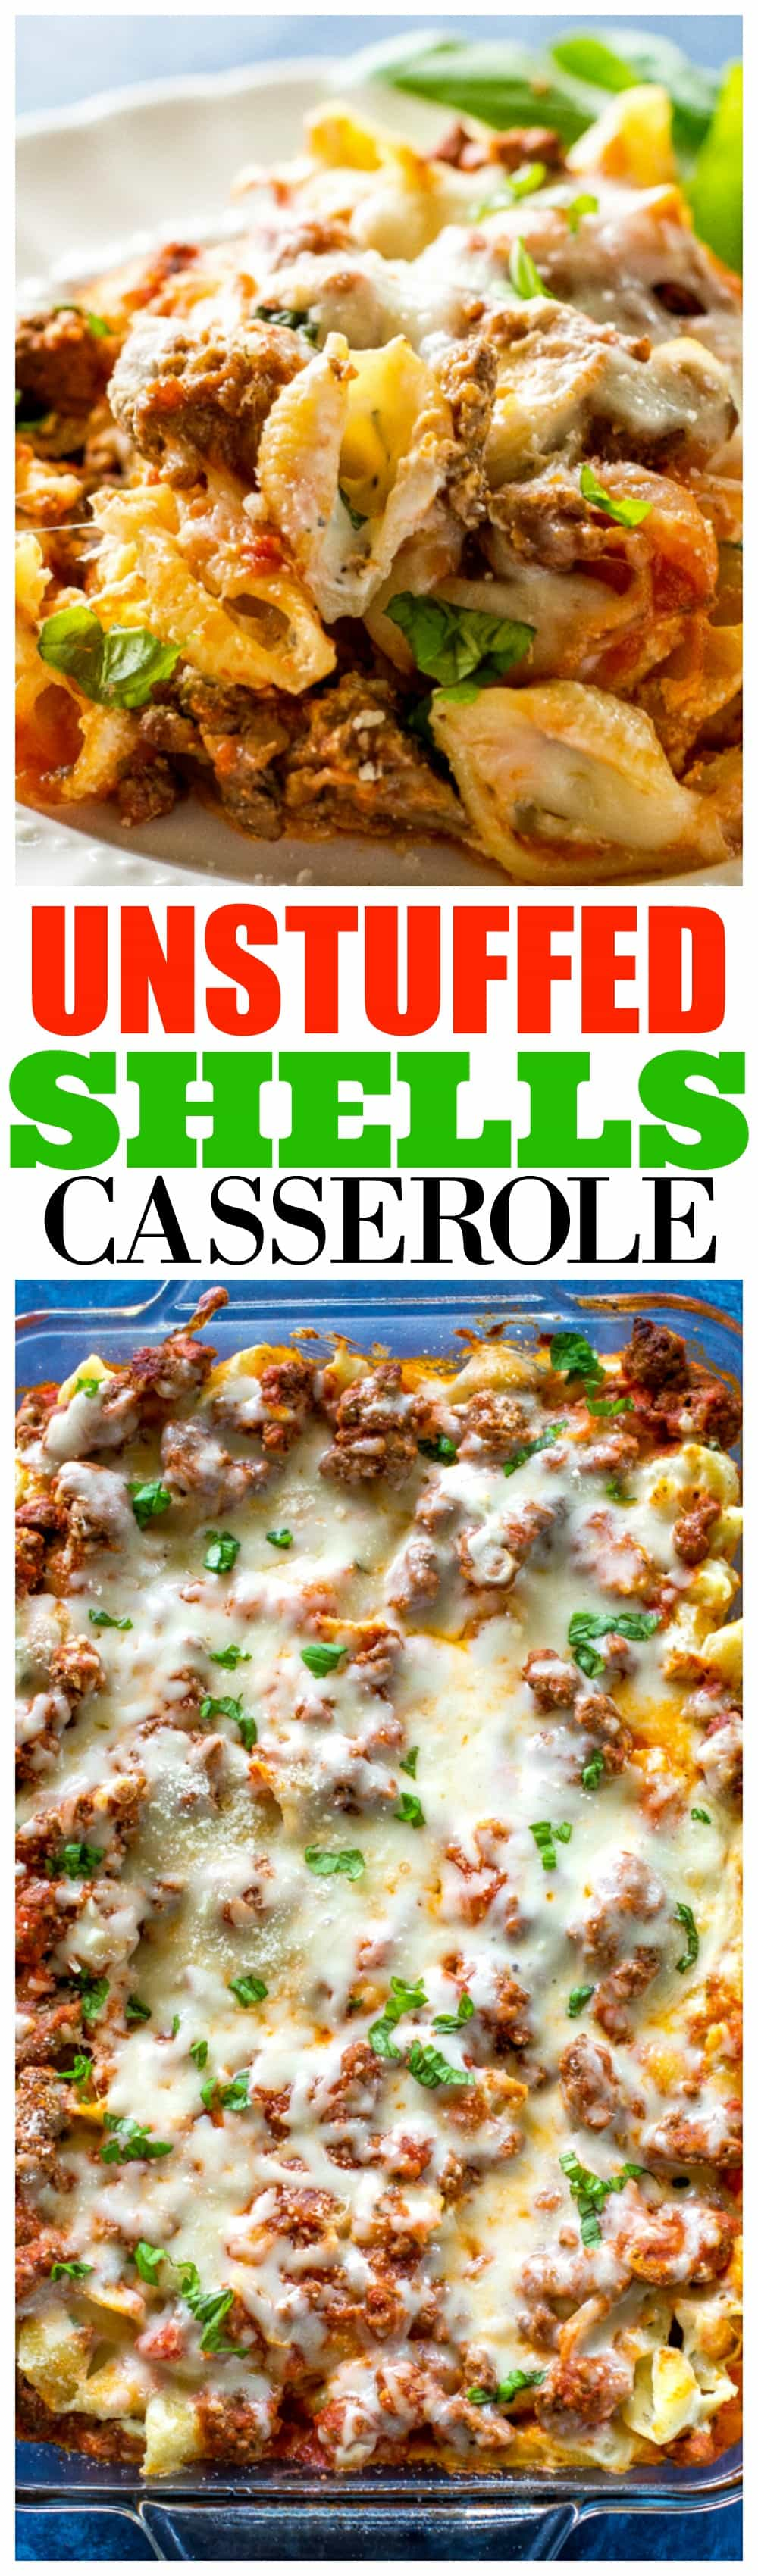 This Unstuffed Shells Casserole is all the flavors of stuffed shells without all the work. This can be made ahead of time and even frozen for an easy dinner. #unstuffed #shells #casserole #pasta #recipe #dinner